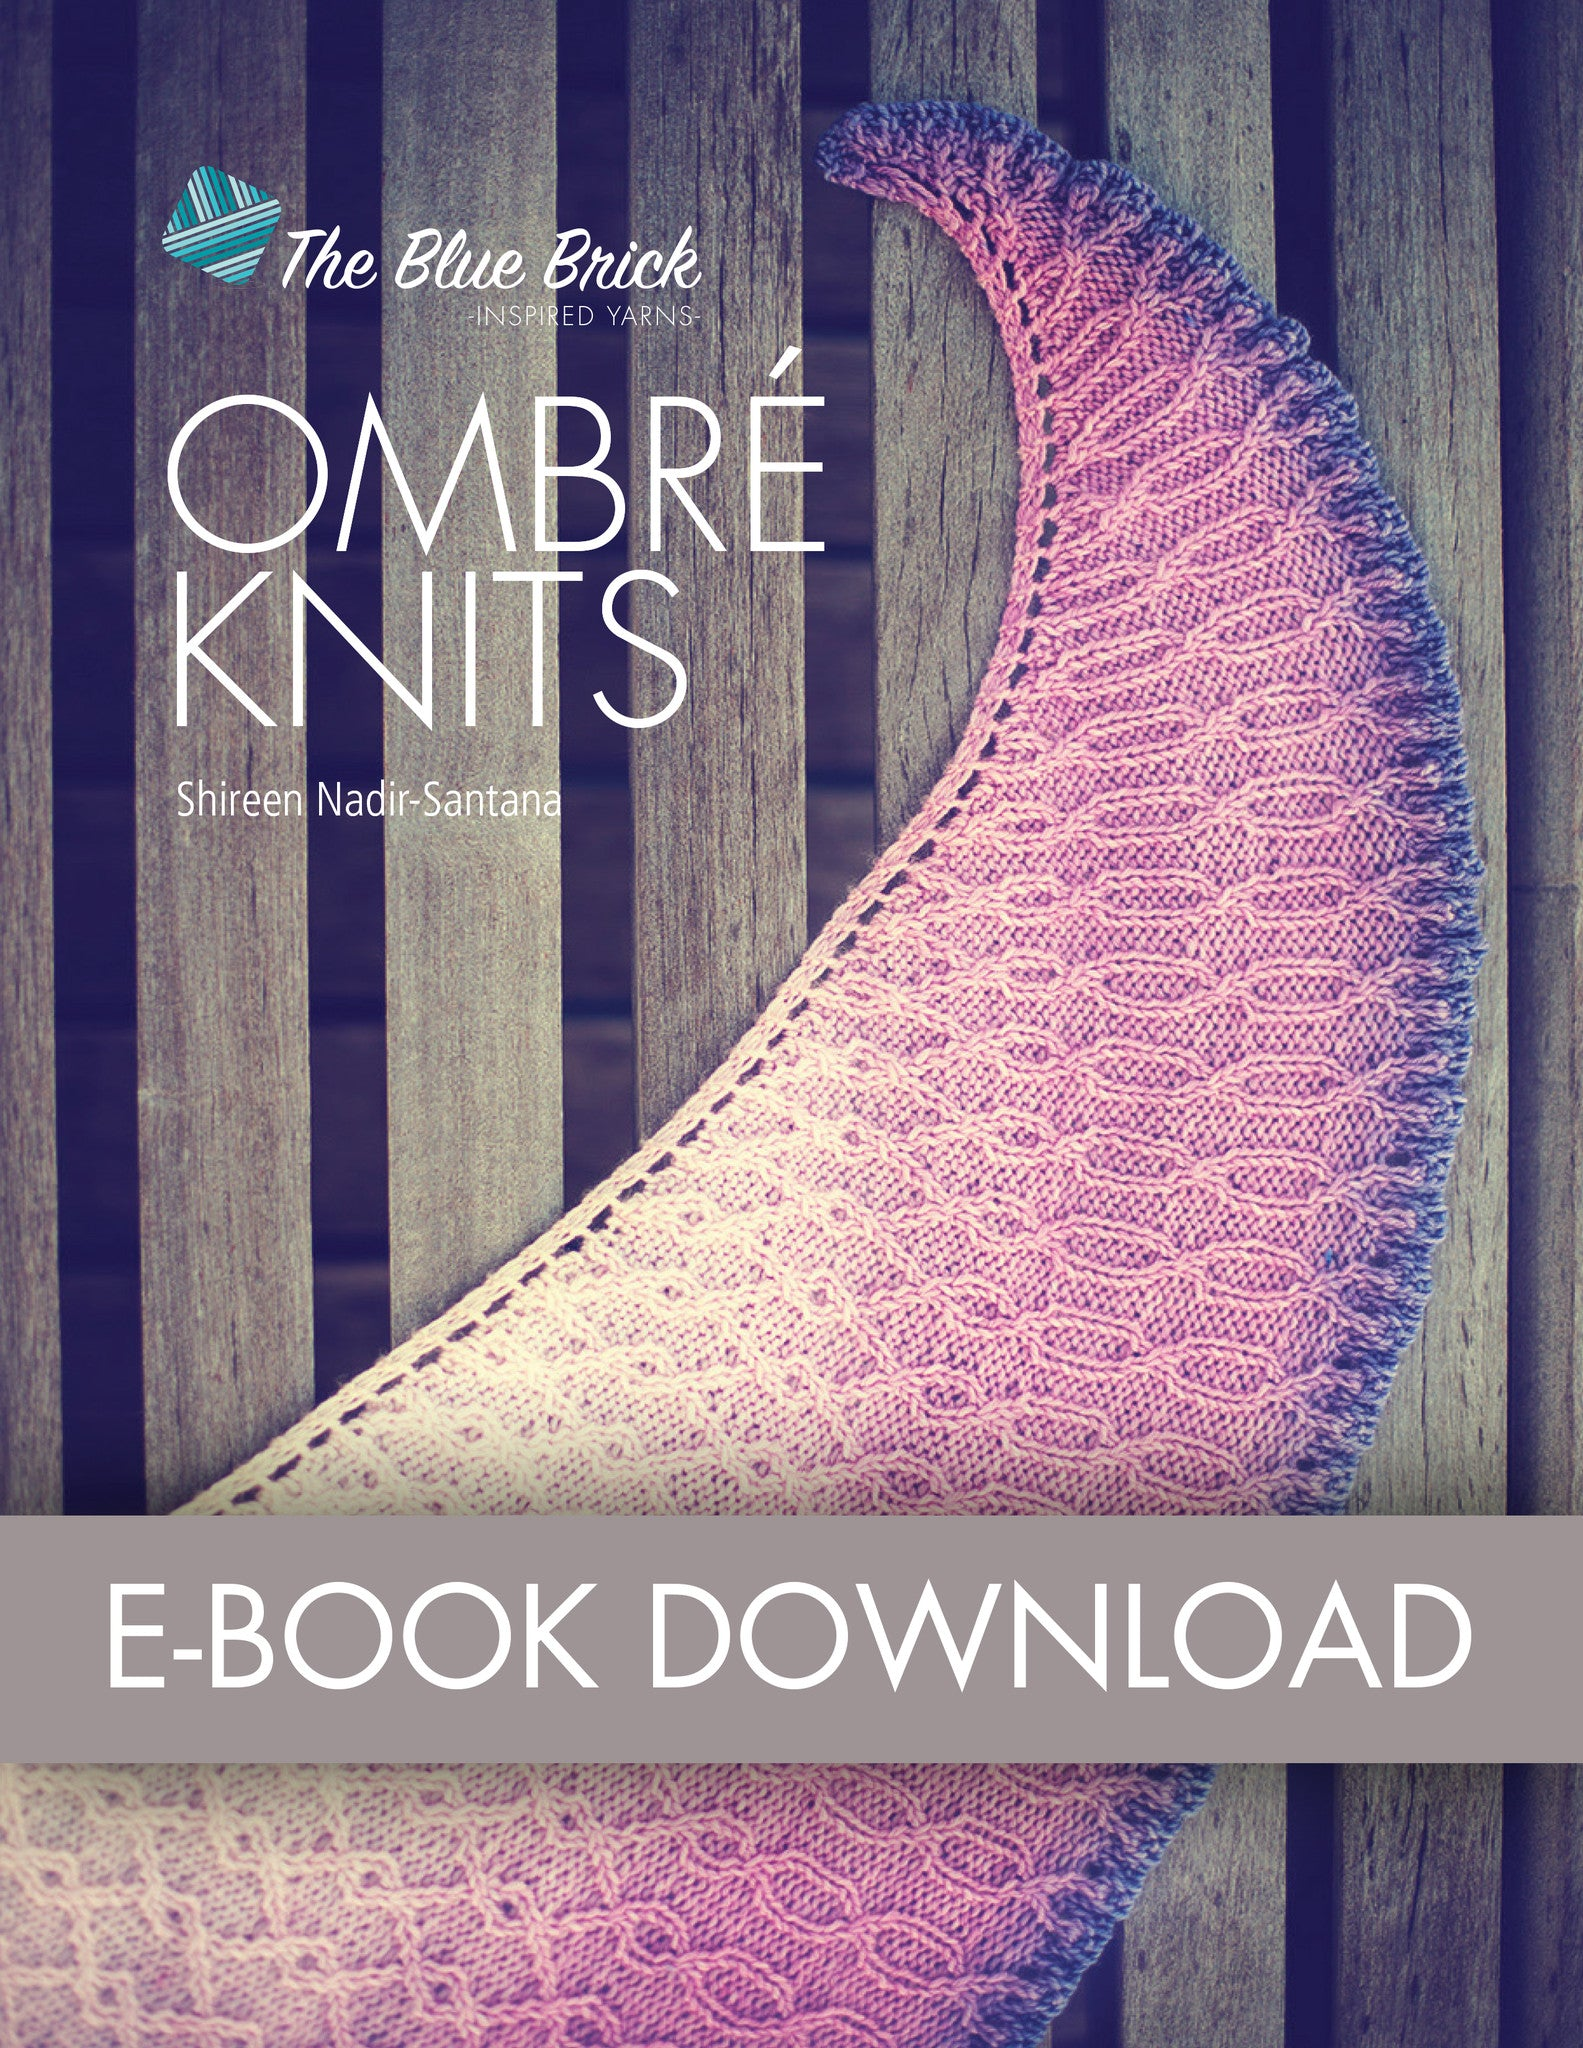 Knitting with gradient yarn E-Book